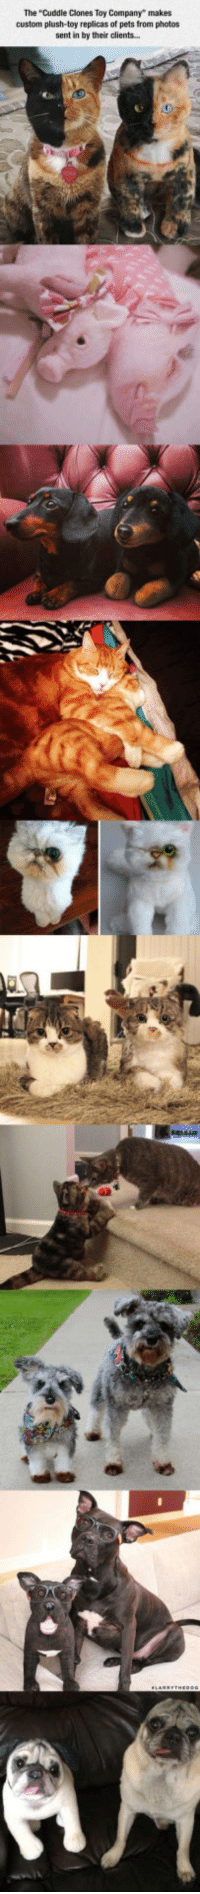 """Pets, Company, and Photos: The """"Cuddle Clones Toy Company"""" makes  custom plush-toy replicas of pets from photos  sent in by their clients. <p>This Company Makes Plush Toy Copies Of Your Pets.</p>"""